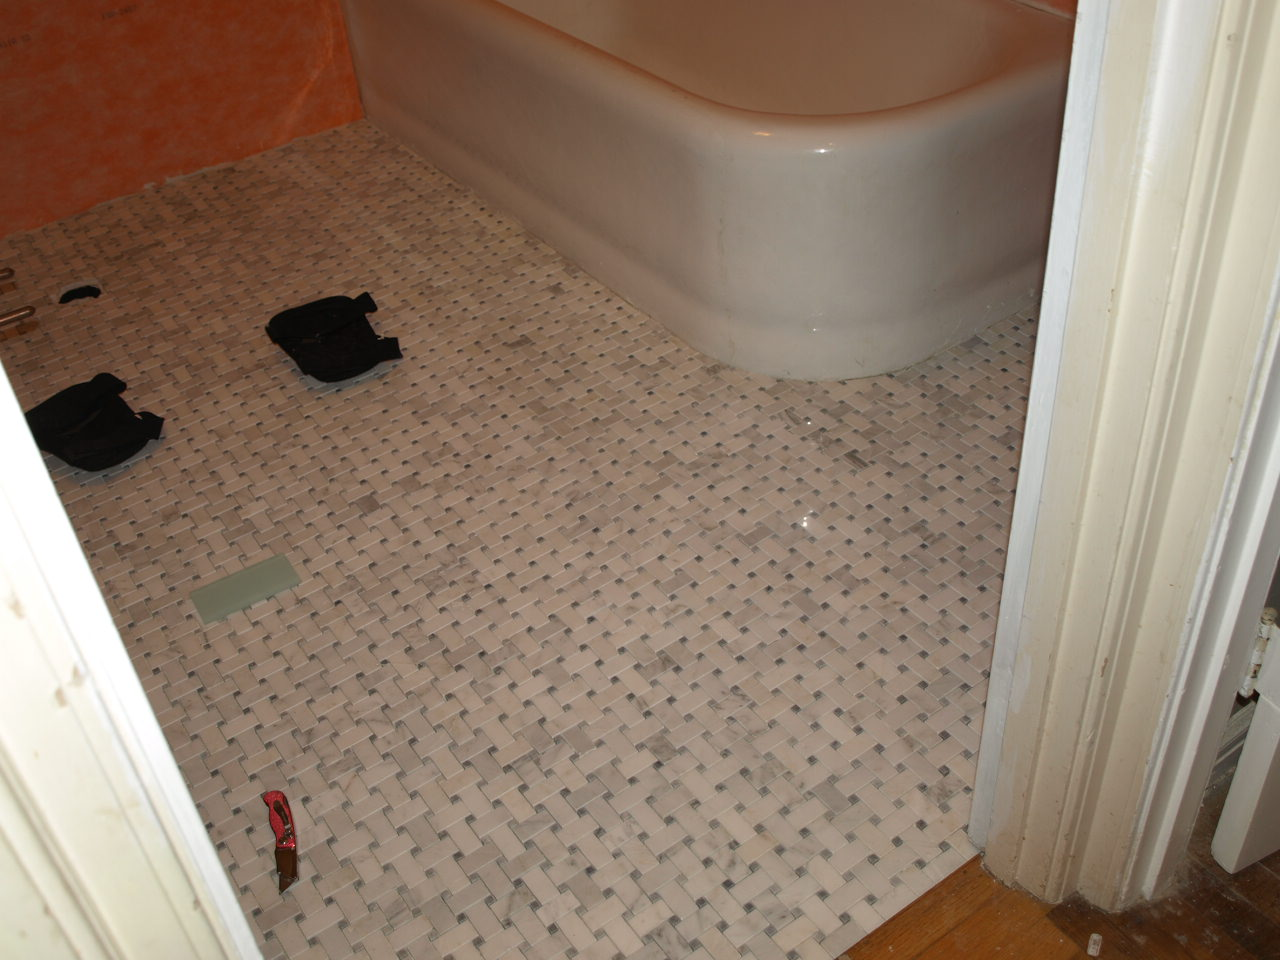 Marble basketweave tile bathroom my web value basketweave is a bitch dailygadgetfo Choice Image